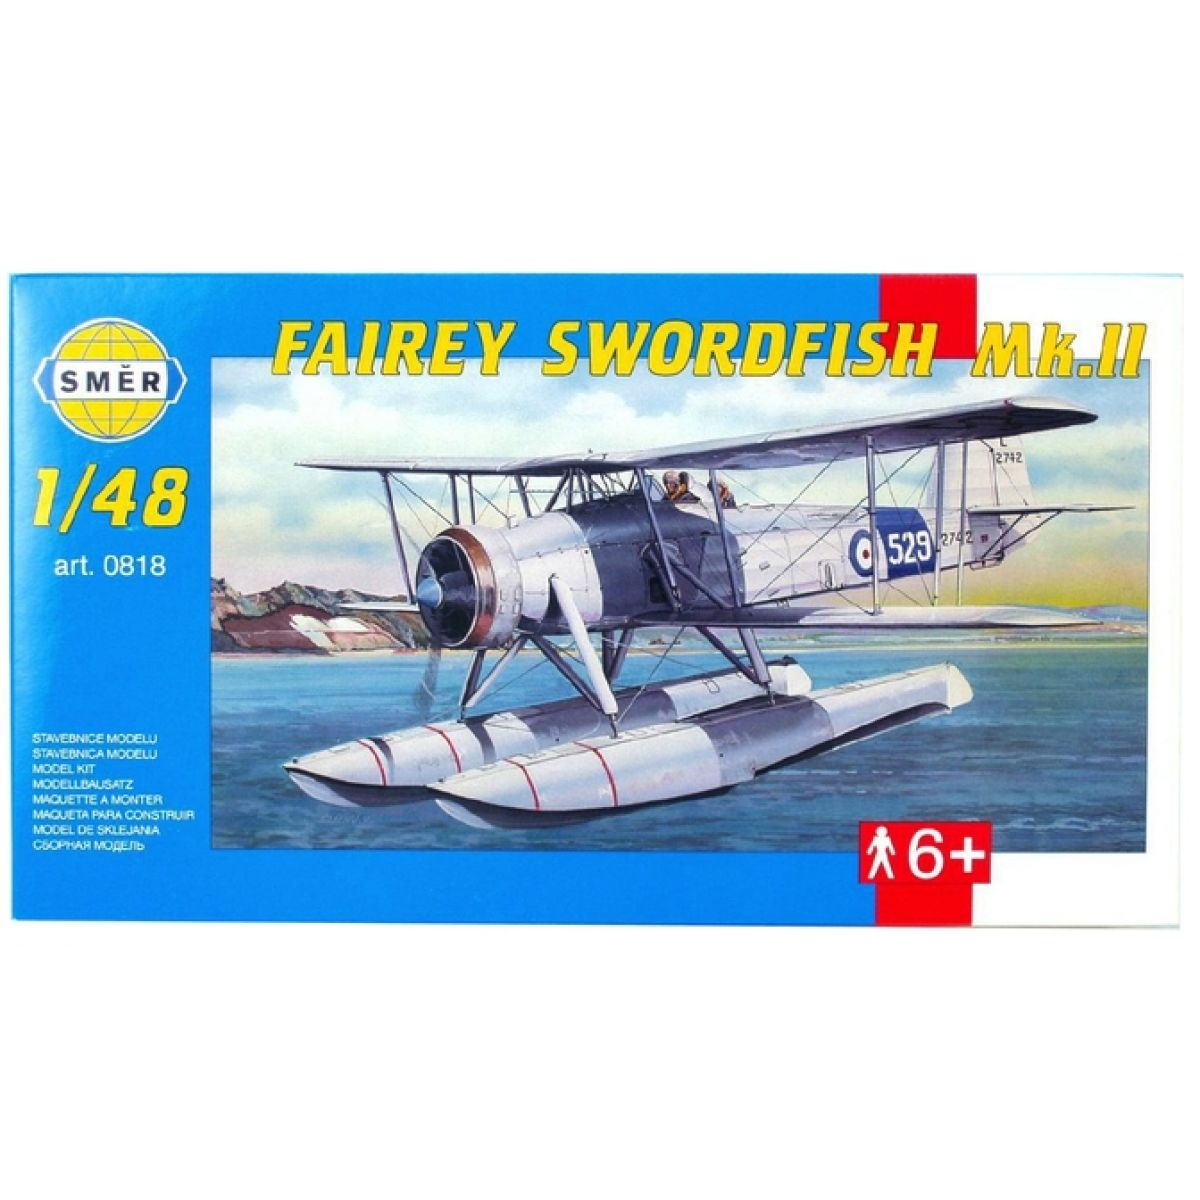 Směr Model Fairey Swordfish Mk.2